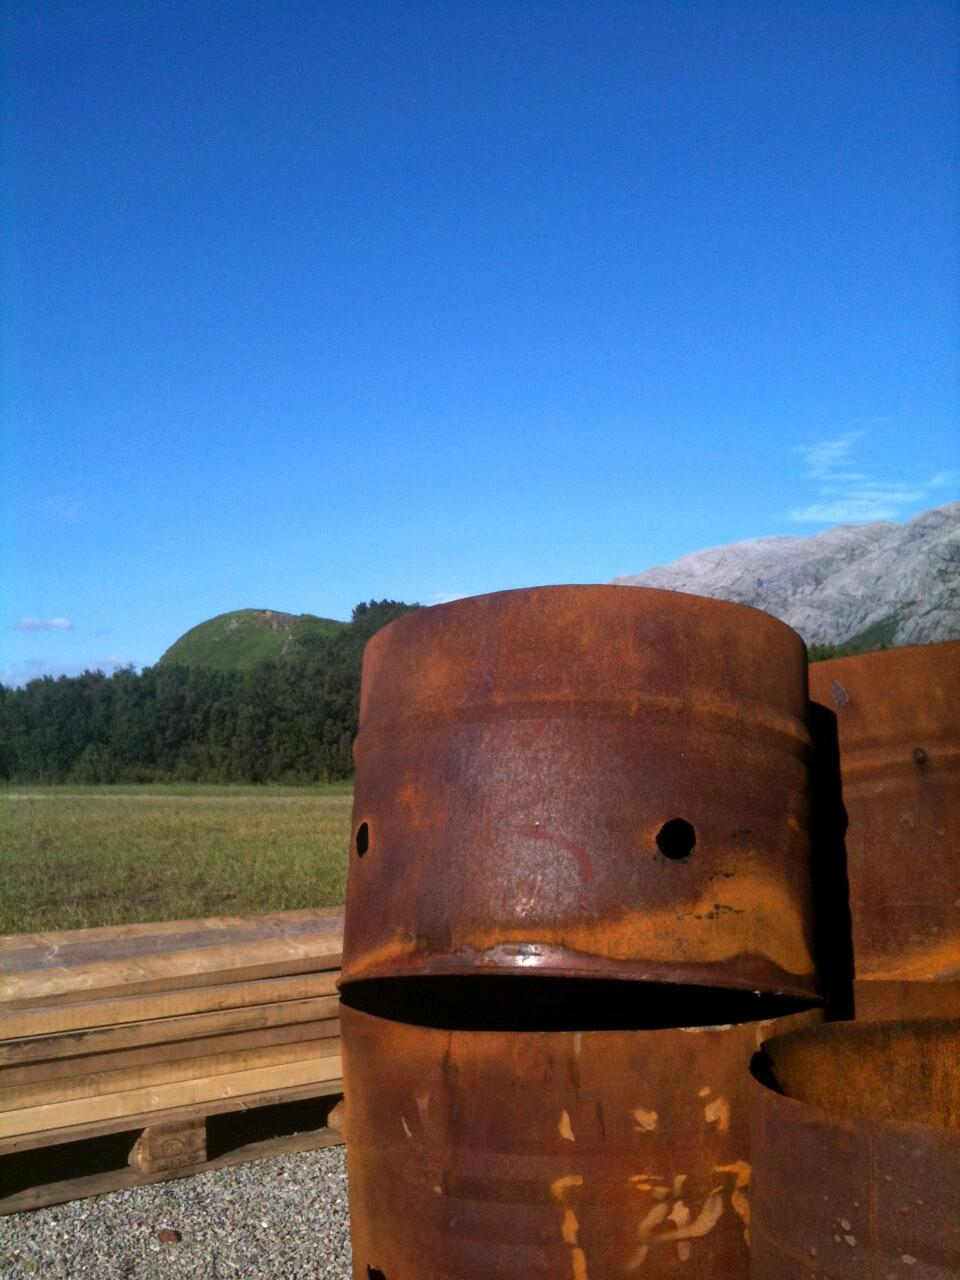 This rusty bucket is having a delightful day.